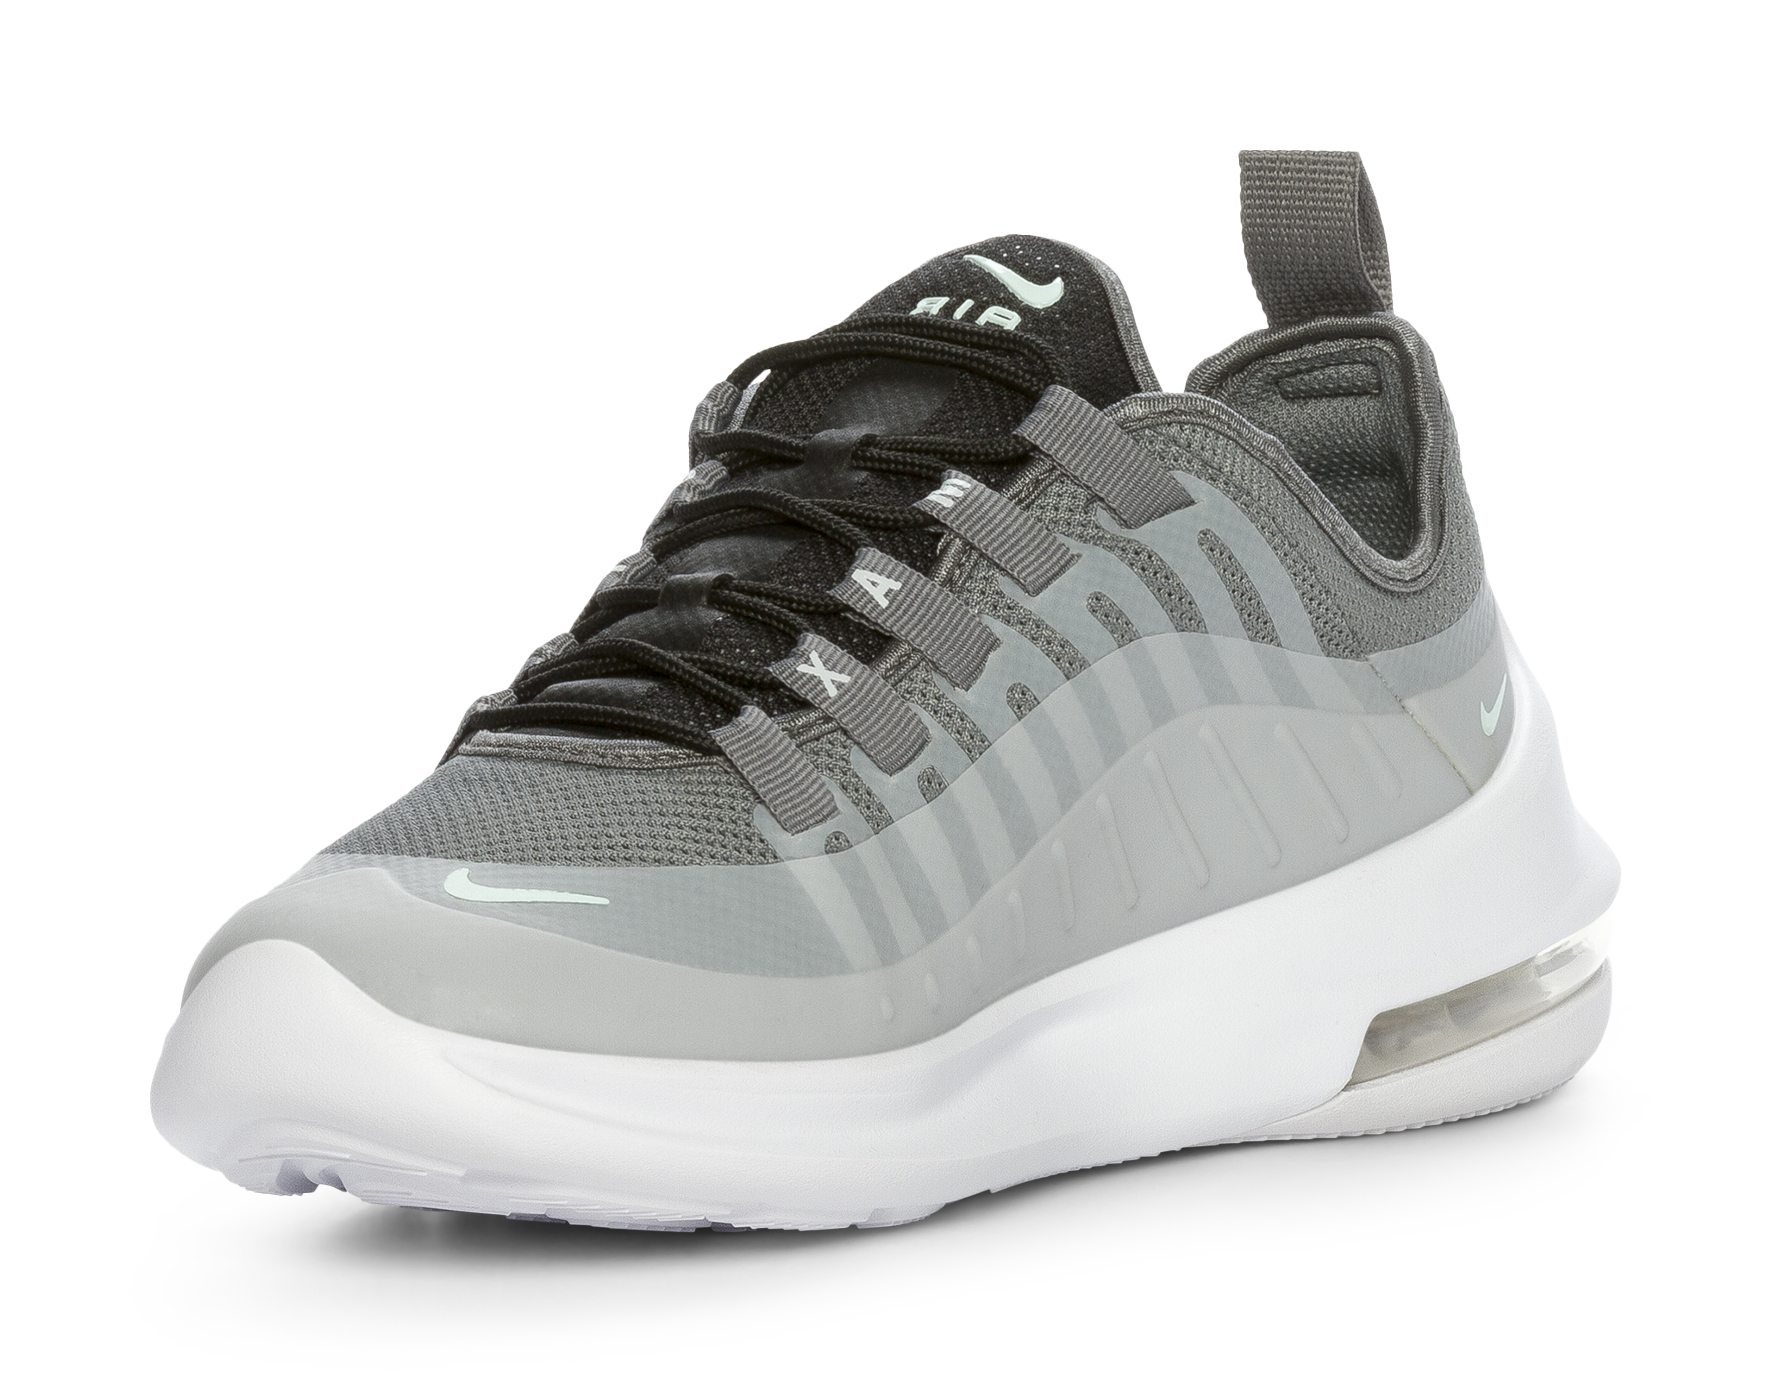 on sale 9734f 29897 Nike Air Max Axis - Gråa 316711 feetfirst.se